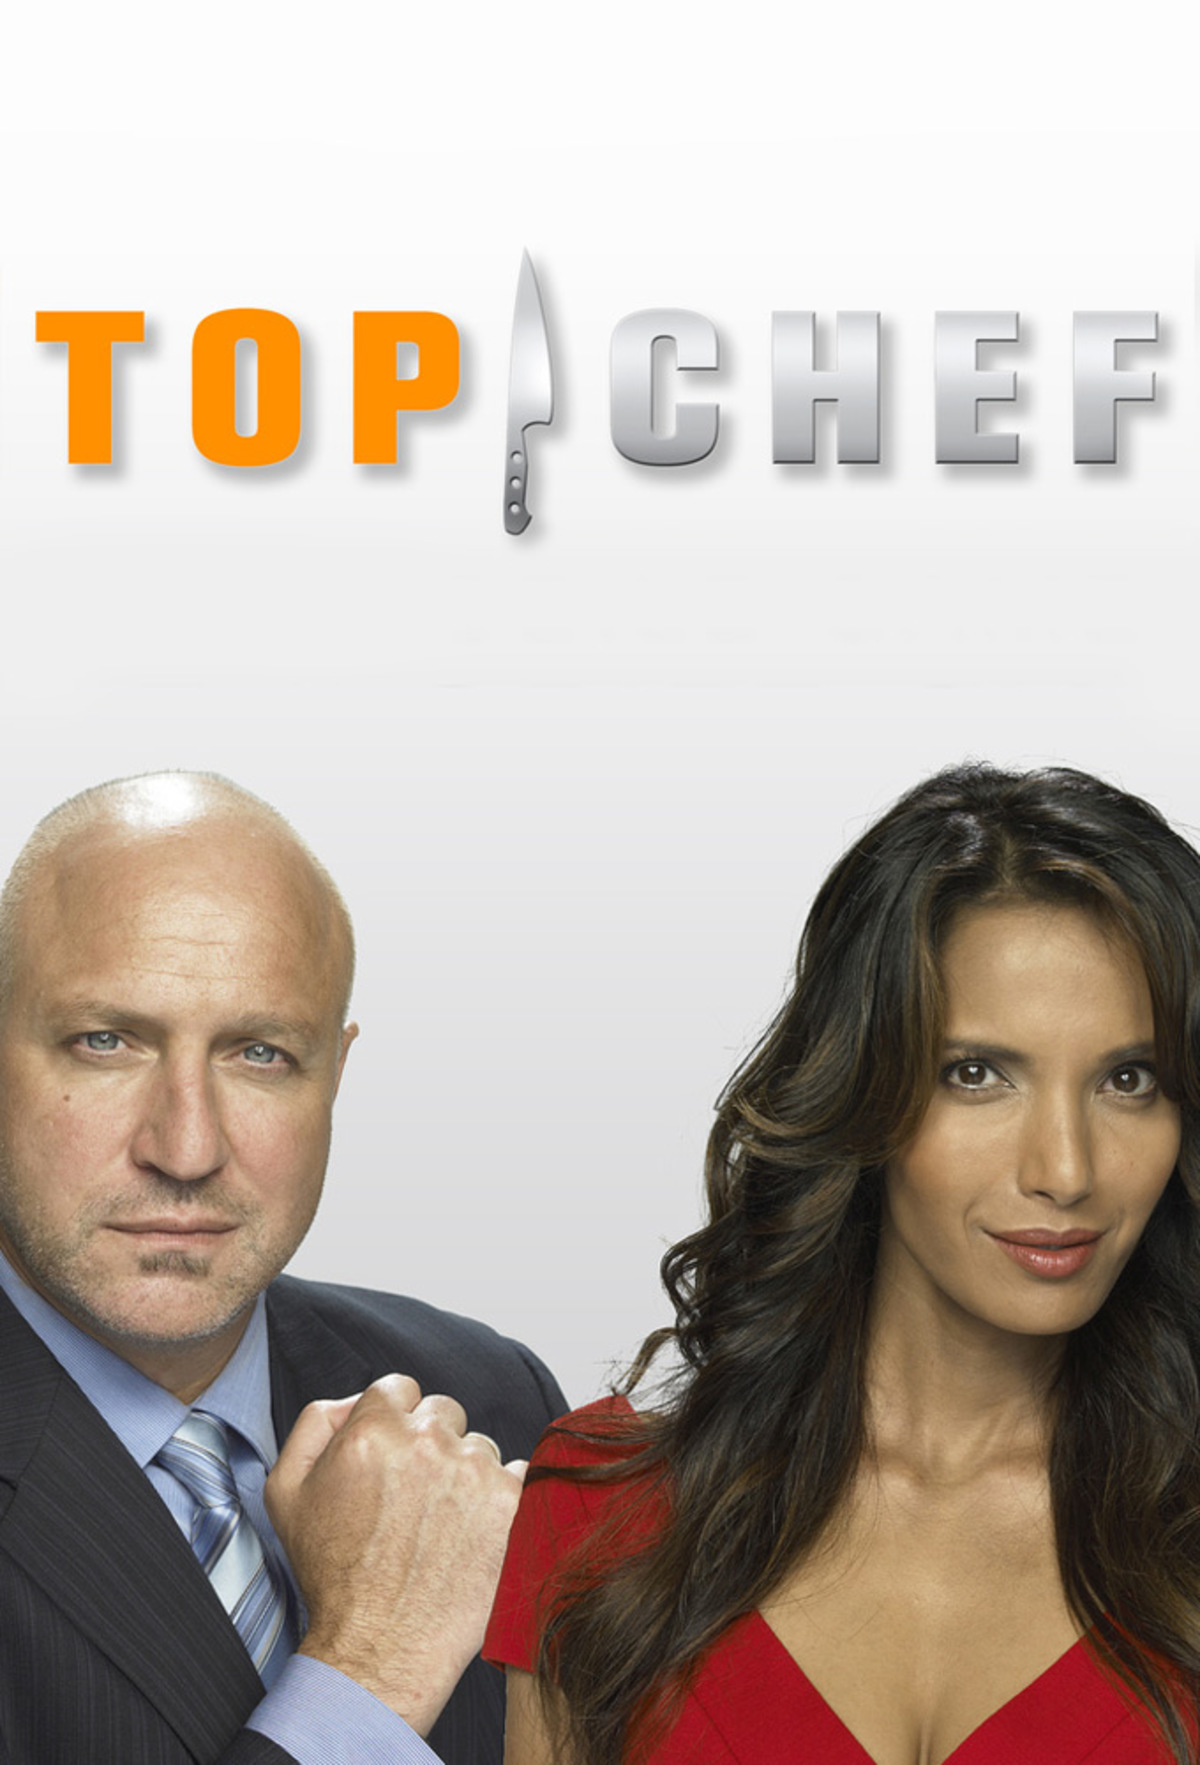 Top Chef - Season 17 Episode 5